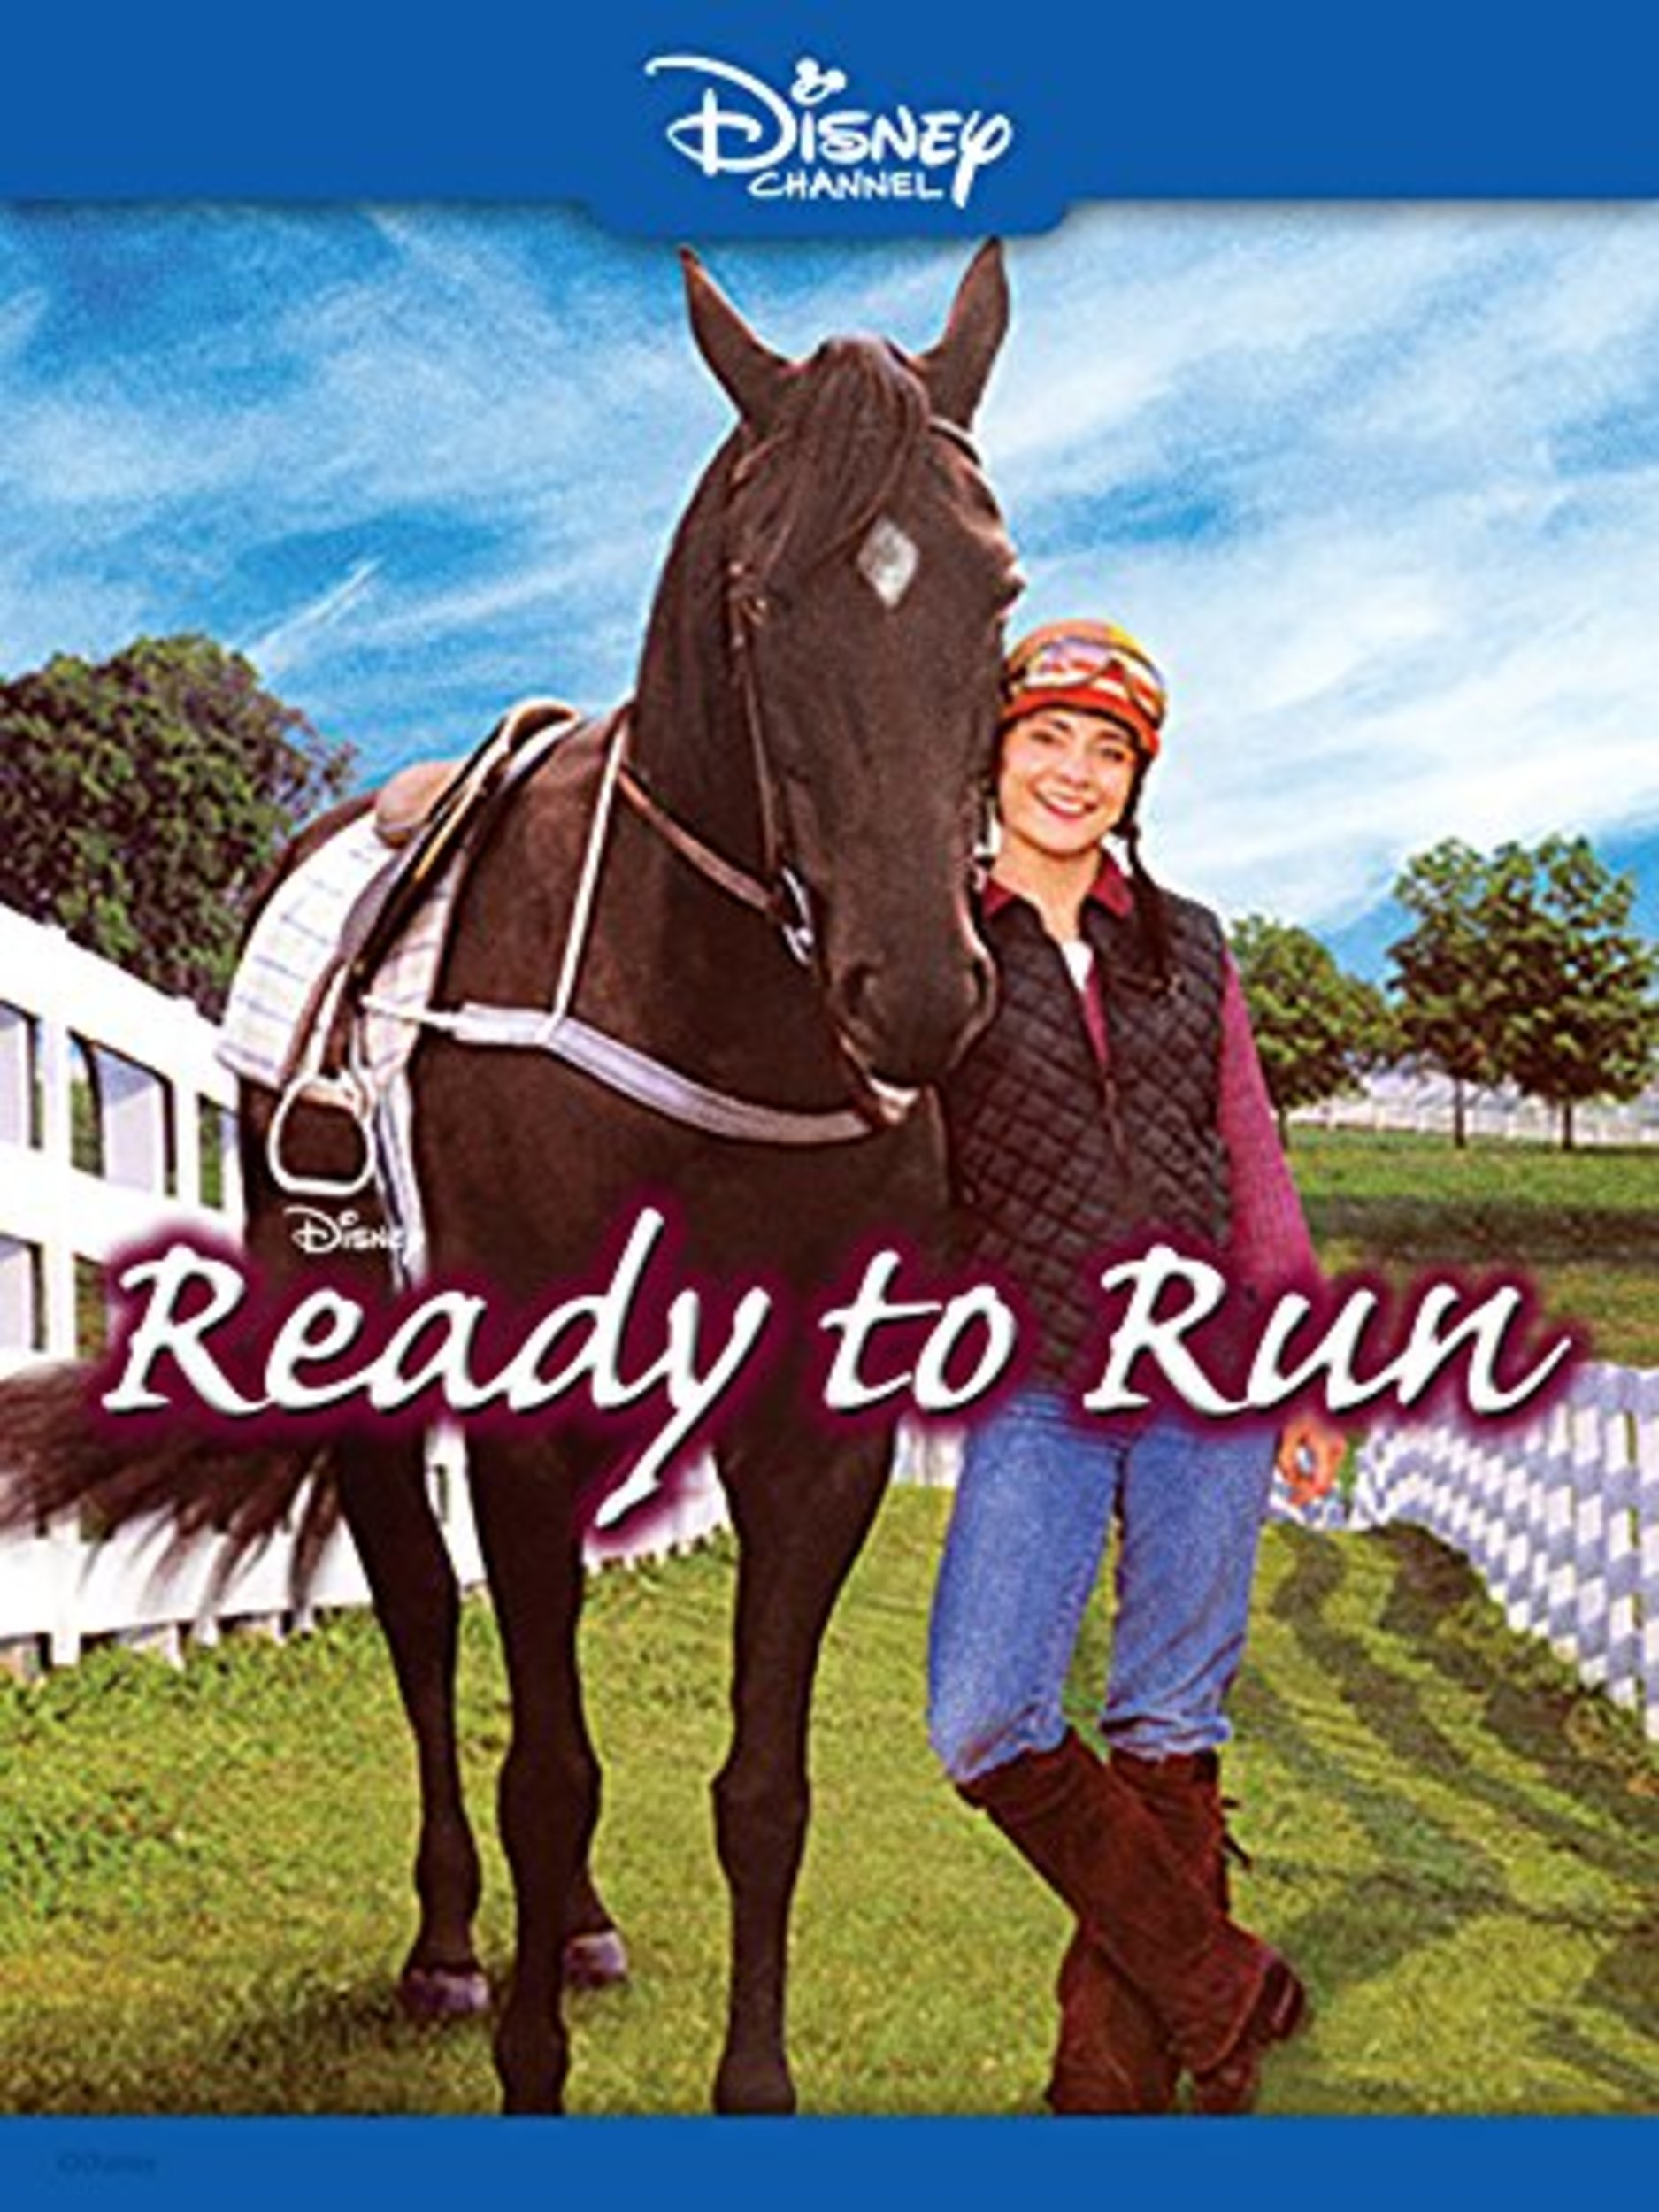 Affiche Poster confiance cheveux ready run disney channel